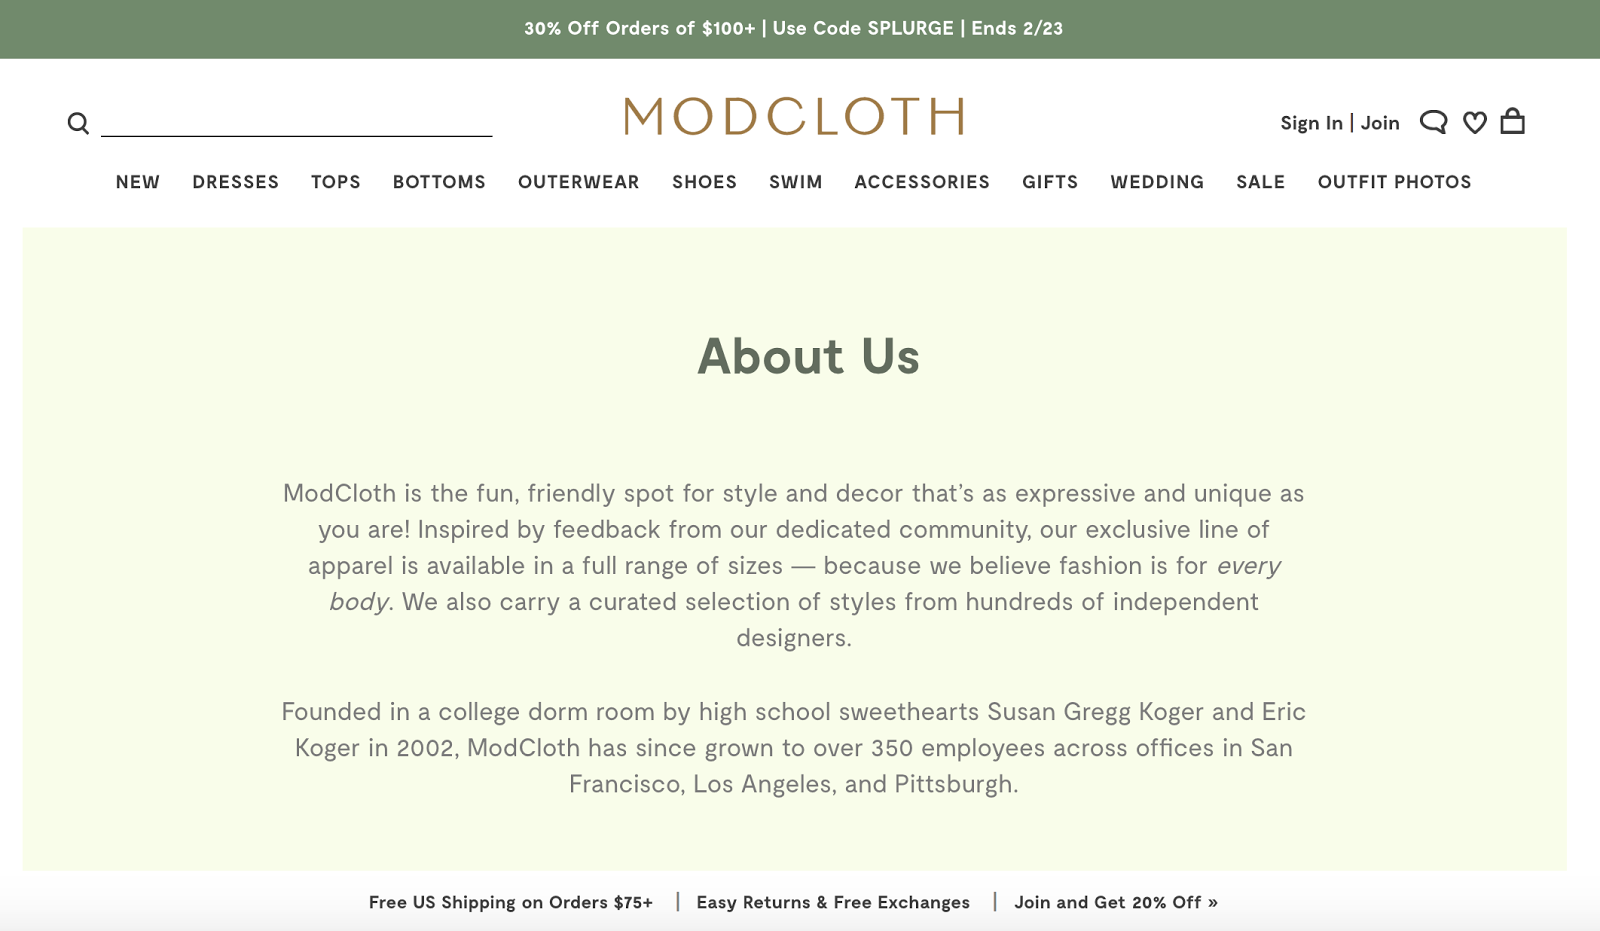 Example of brand storytelling from Modcloth